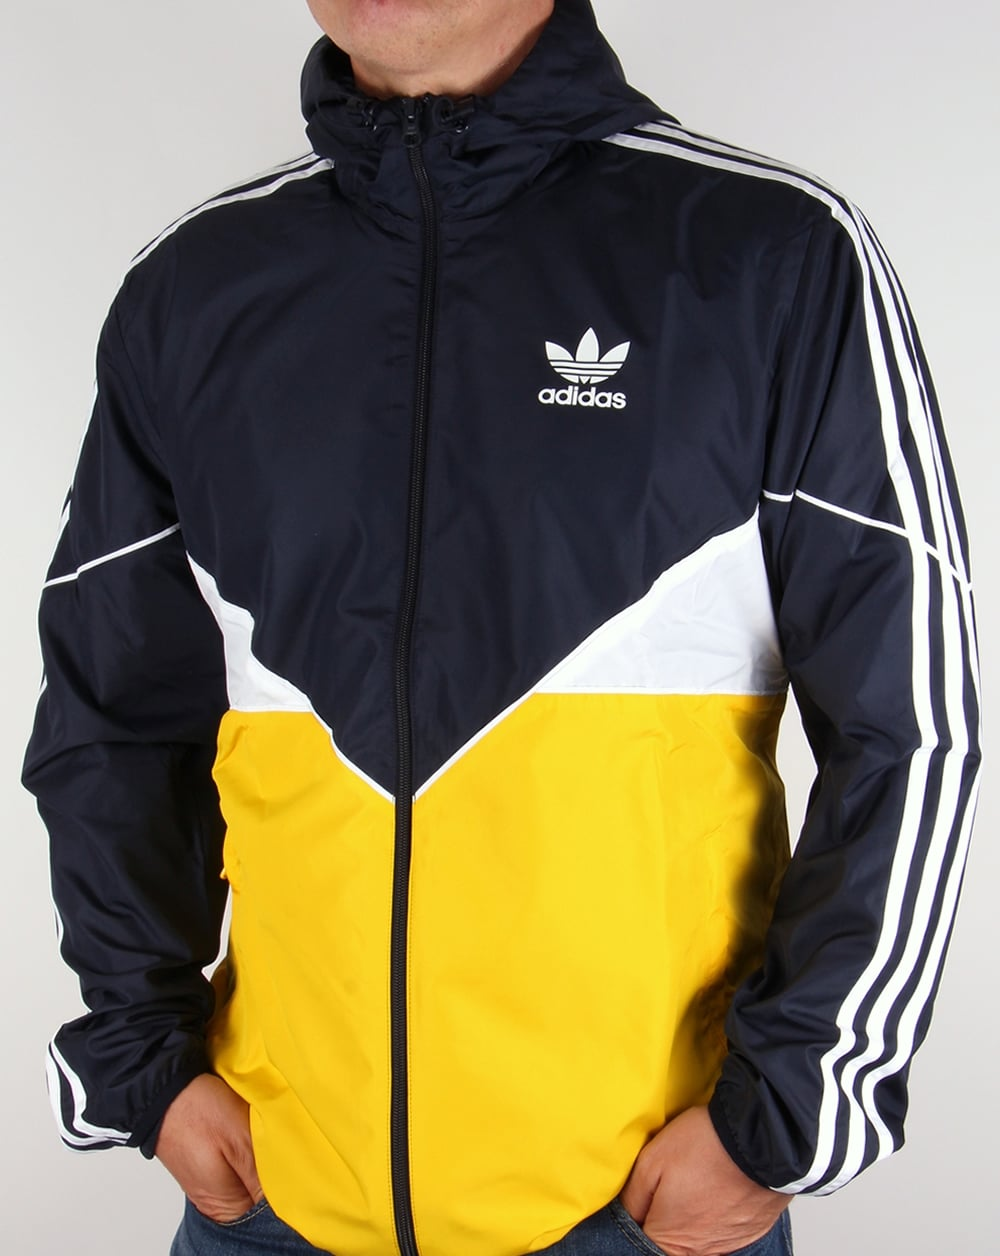 Adidas Originals Colorado Windbreaker Navy/Yellow,jacket,coat,mens